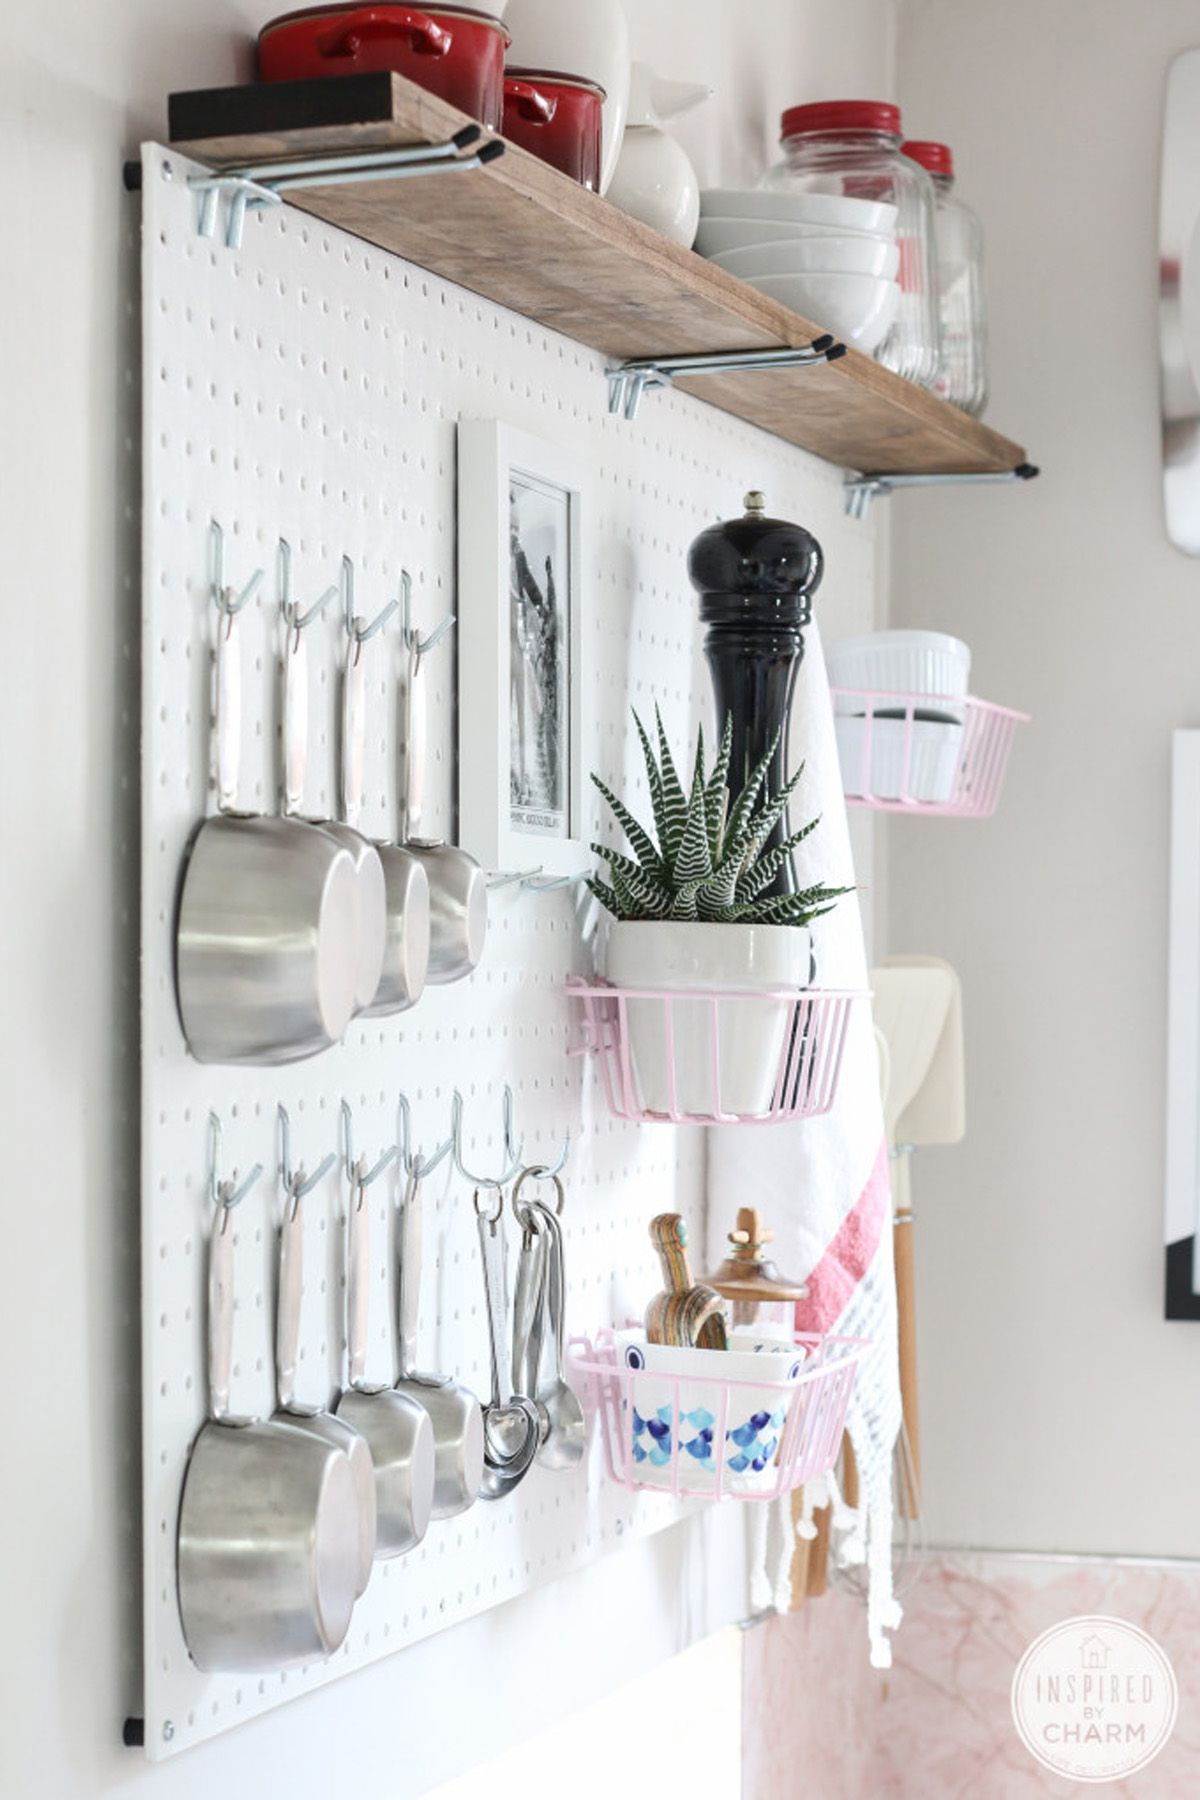 Kitchen Pegboard Bulbs 25 Genius Diy Storage Solutions Your Home Needs Now Adobe Use A Peg Board To Hang Things In Also Would Be Great For Adding Color Just By Painting The